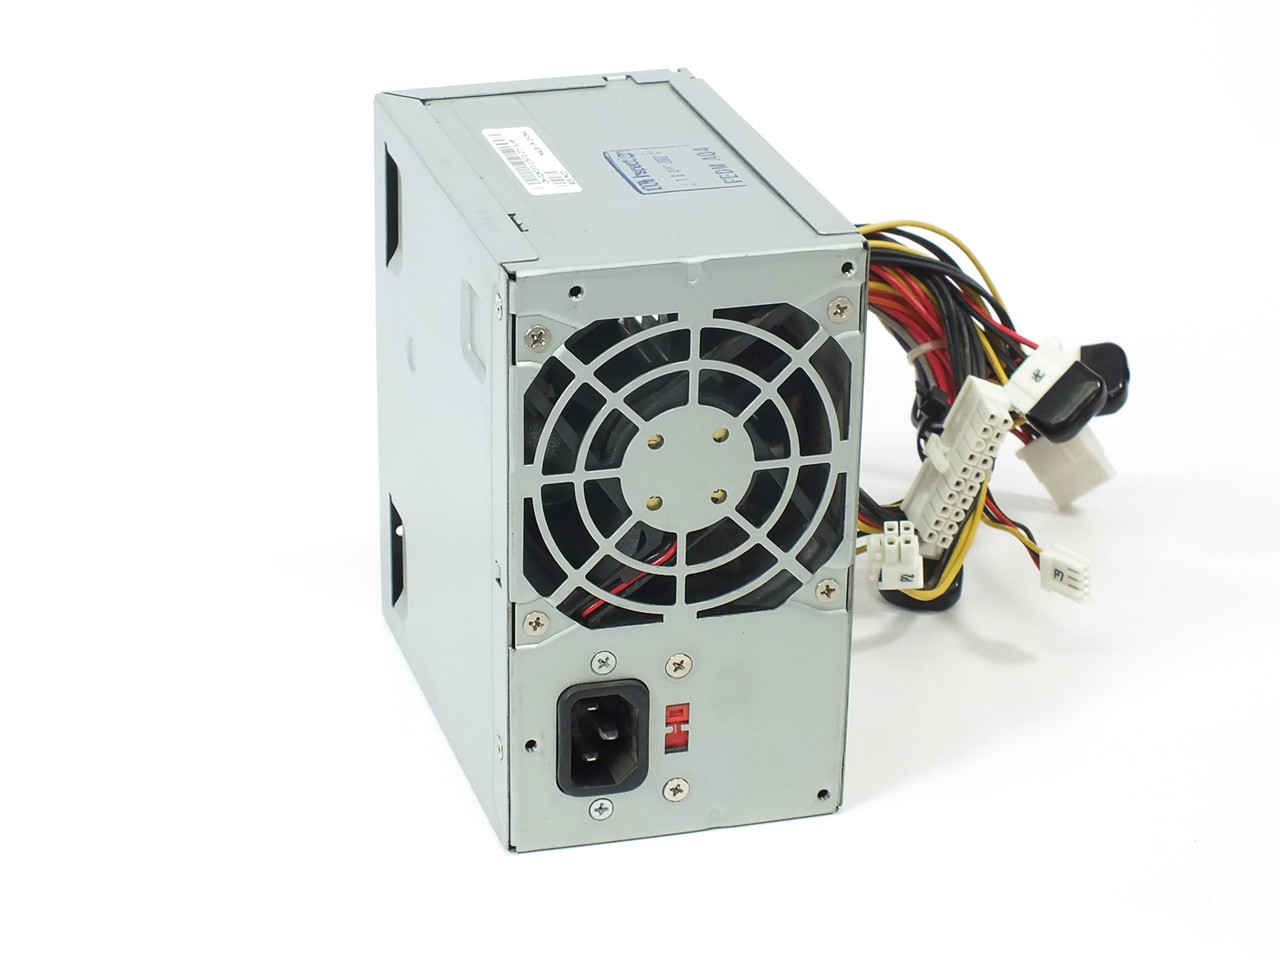 DELL NPS-250KB A 170W Power Supply | RecycledGoods.com